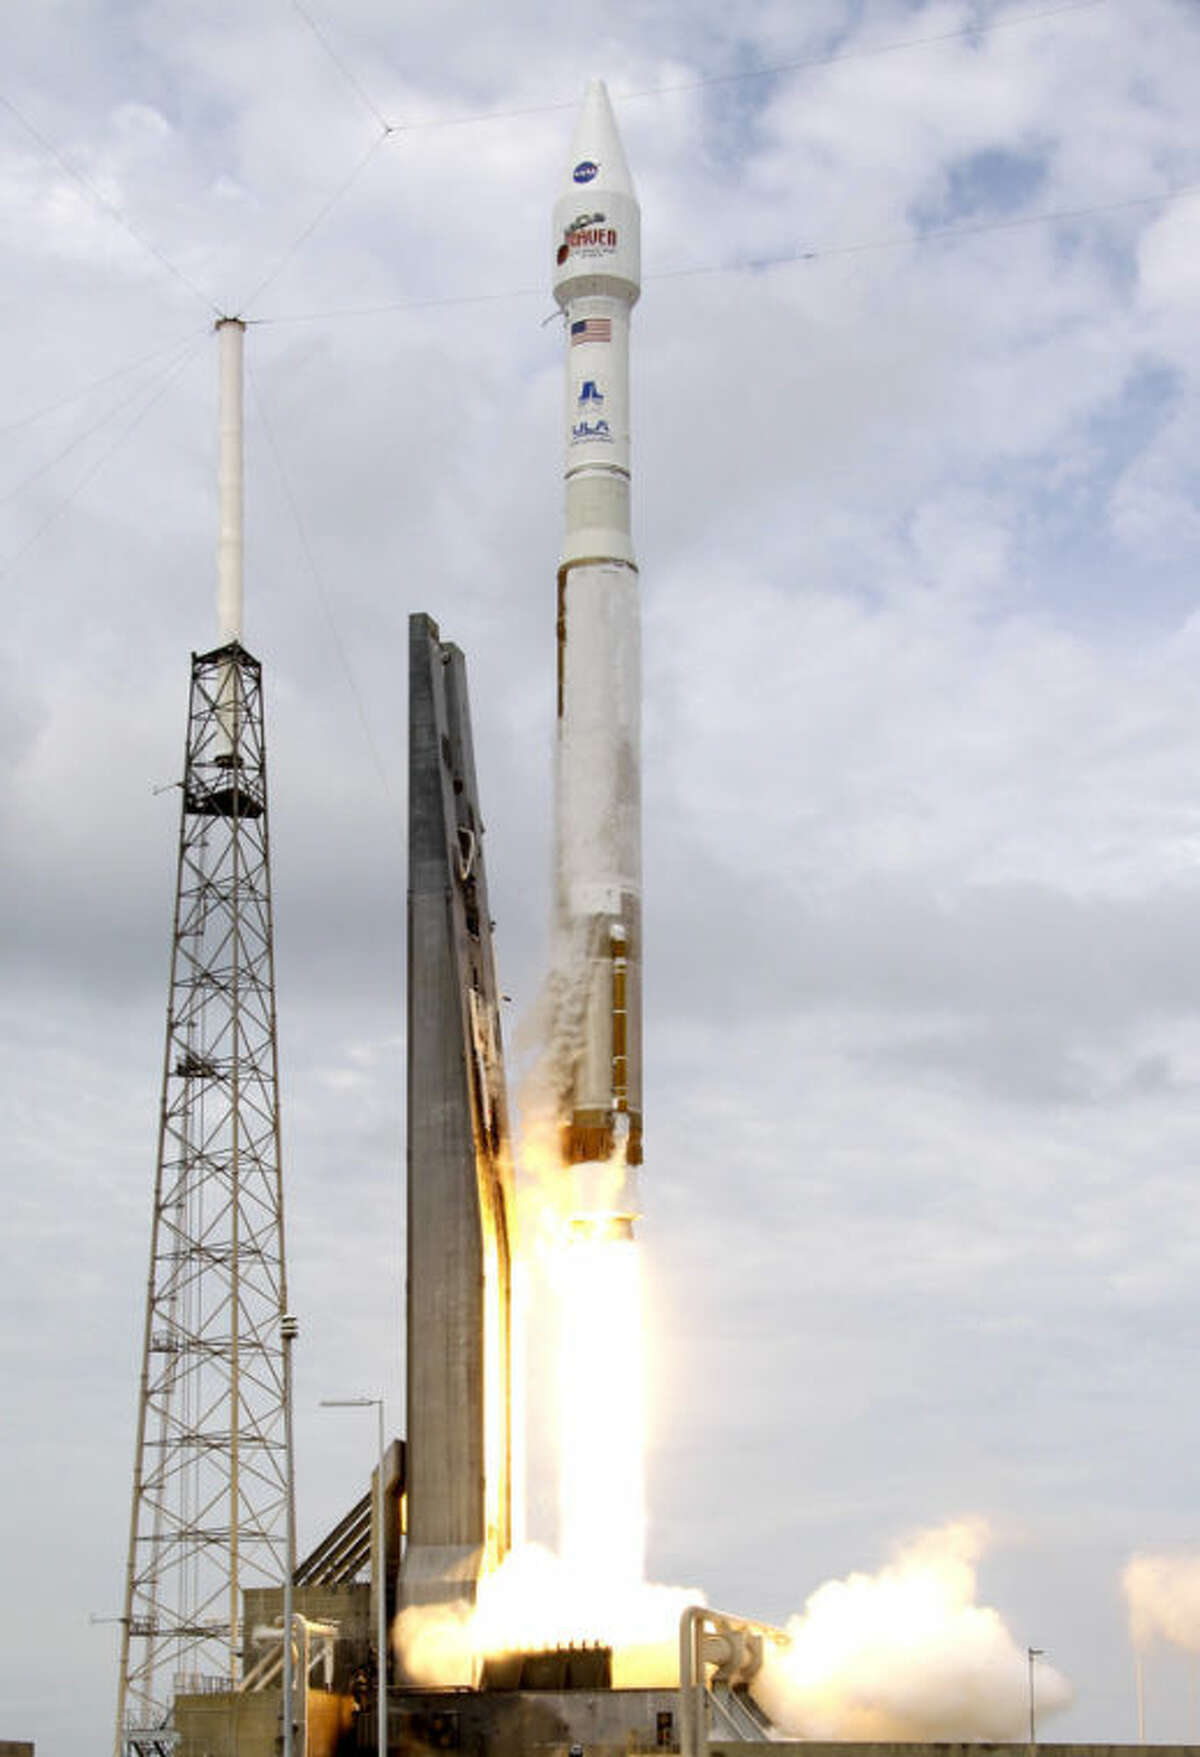 NASA's Maven, atop a United Launch Alliance Atlas 5 rocket, lifts off from Cape Canaveral Air Force Station, Monday, Nov. 18, 2013, in Cape Canaveral, Fla. The spacecraft will orbit Mars and study the planet's upper atmosphere. (AP Photo/John Raoux)